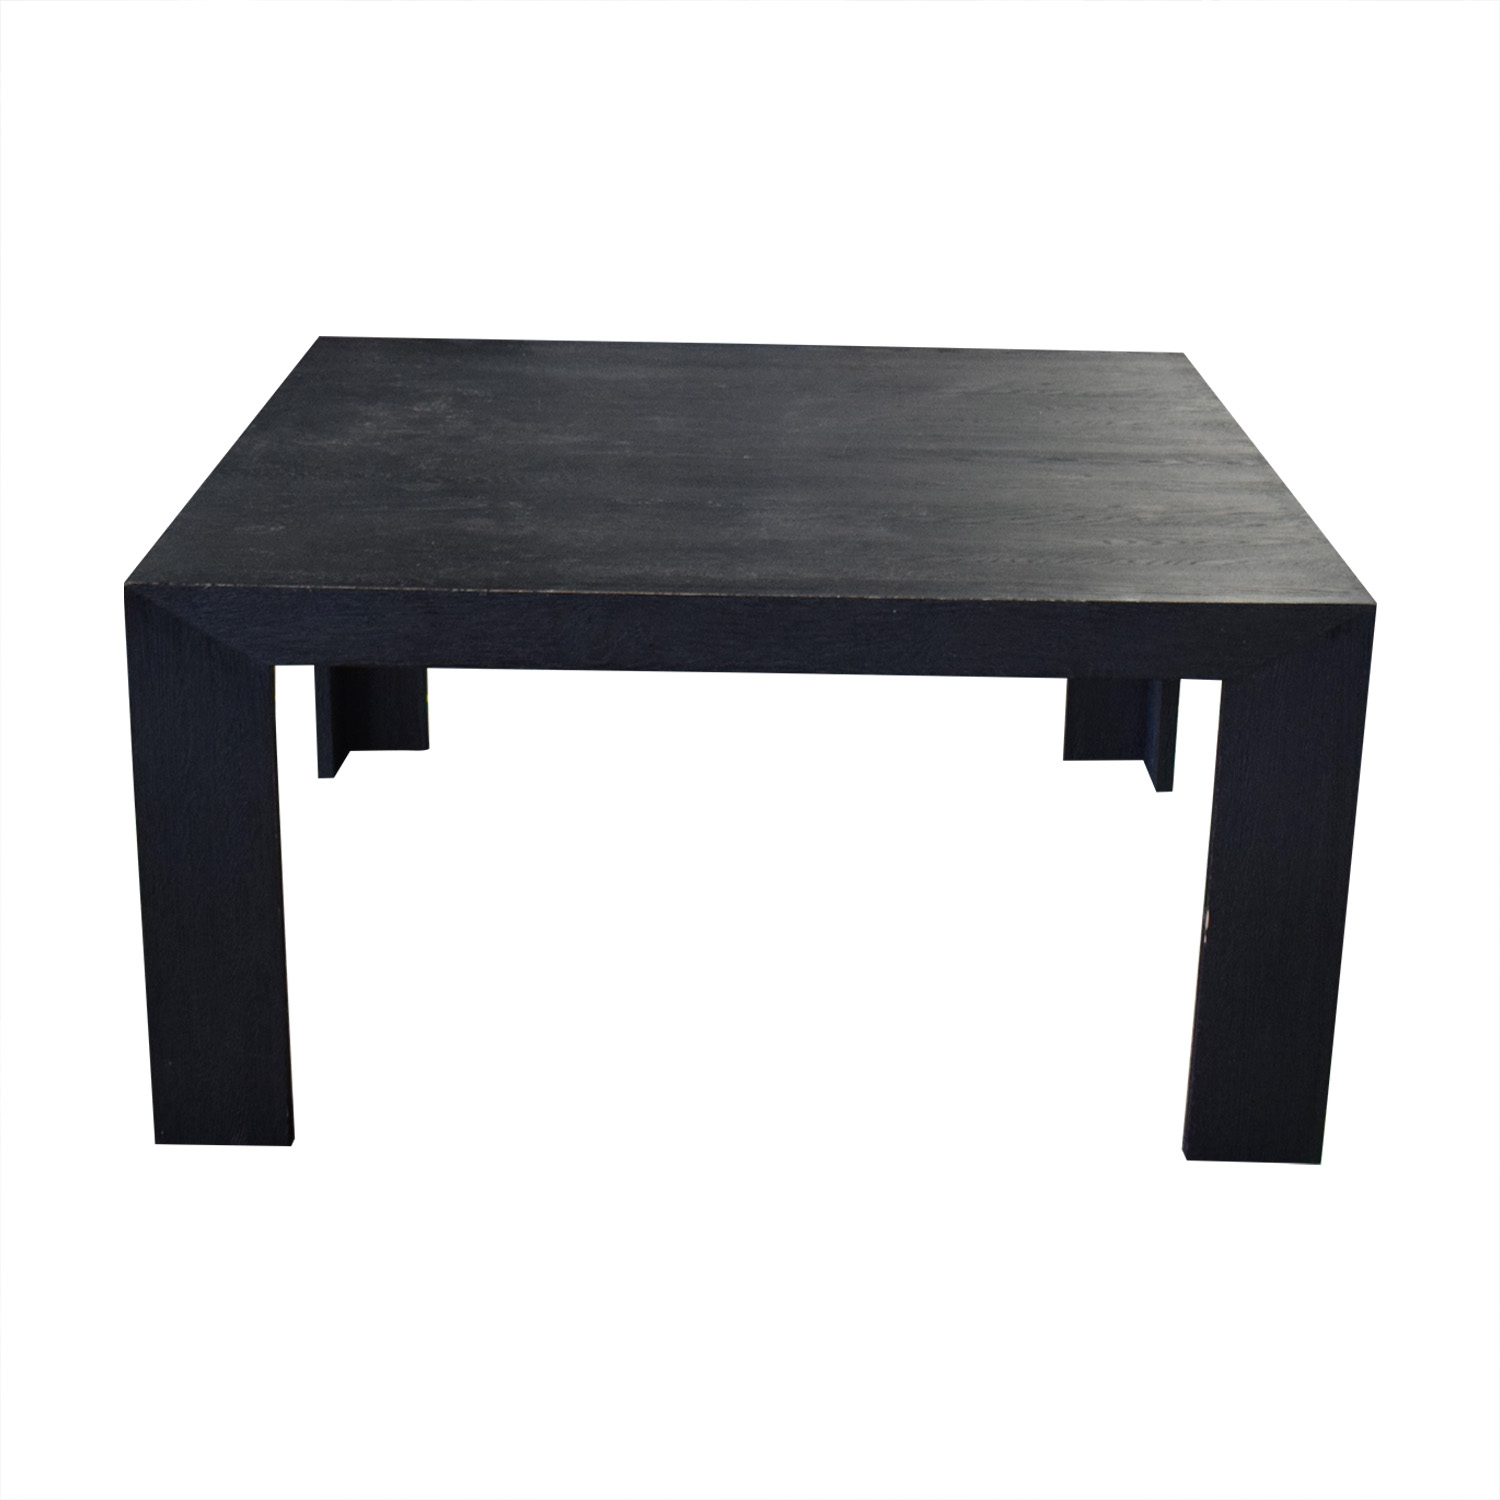 Restoration Hardware Restoration Hardware Machinto Square Dining Table second hand